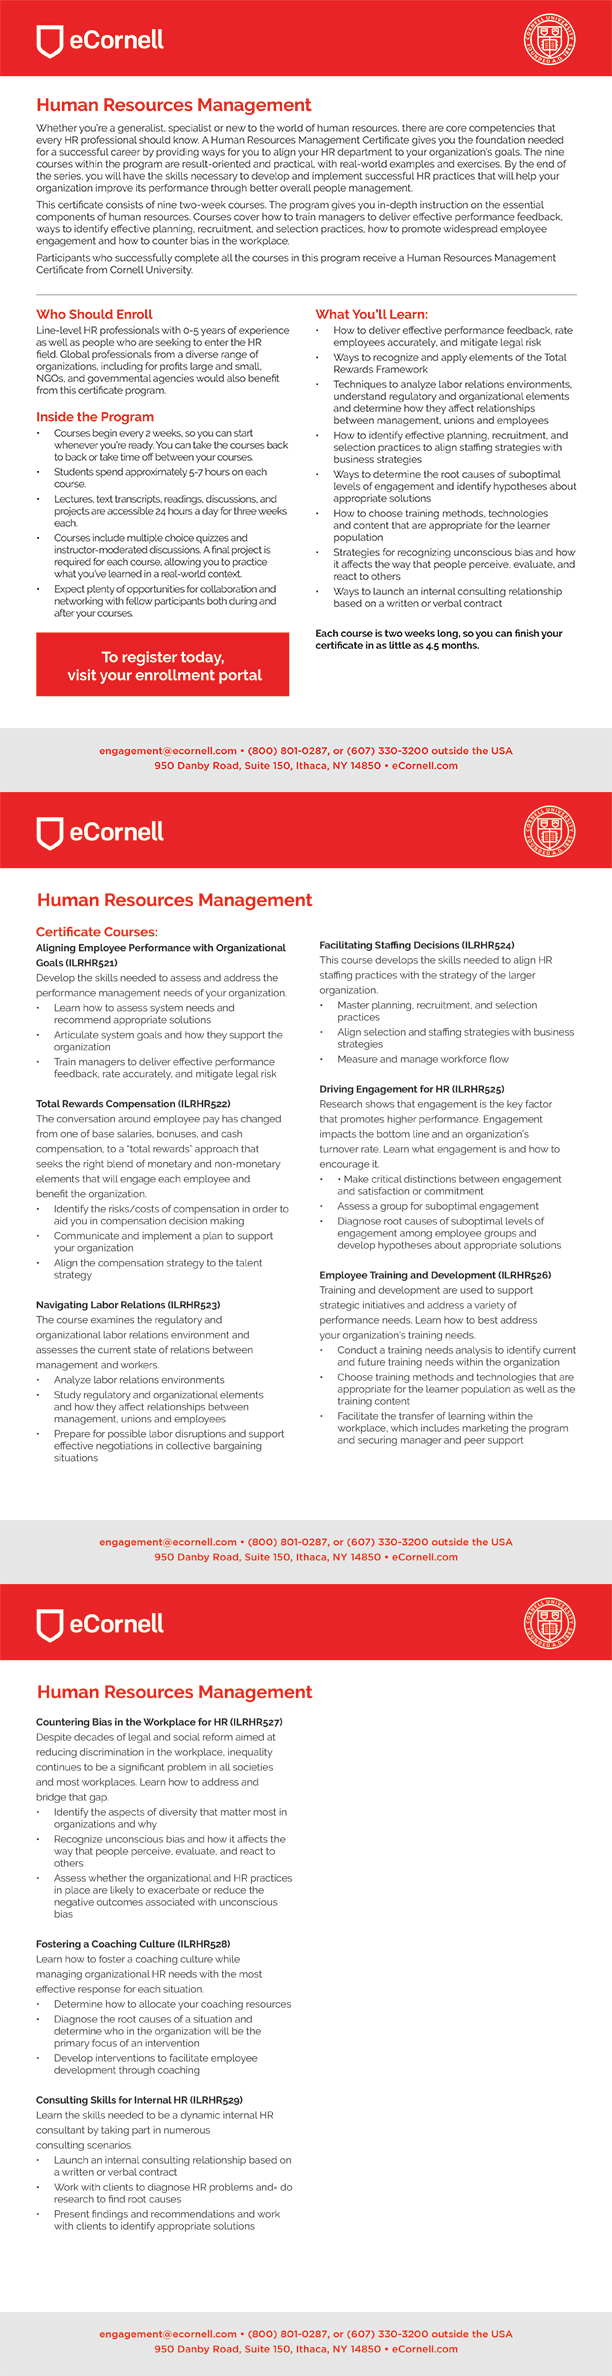 Human Resources Management Flyer for Corporations